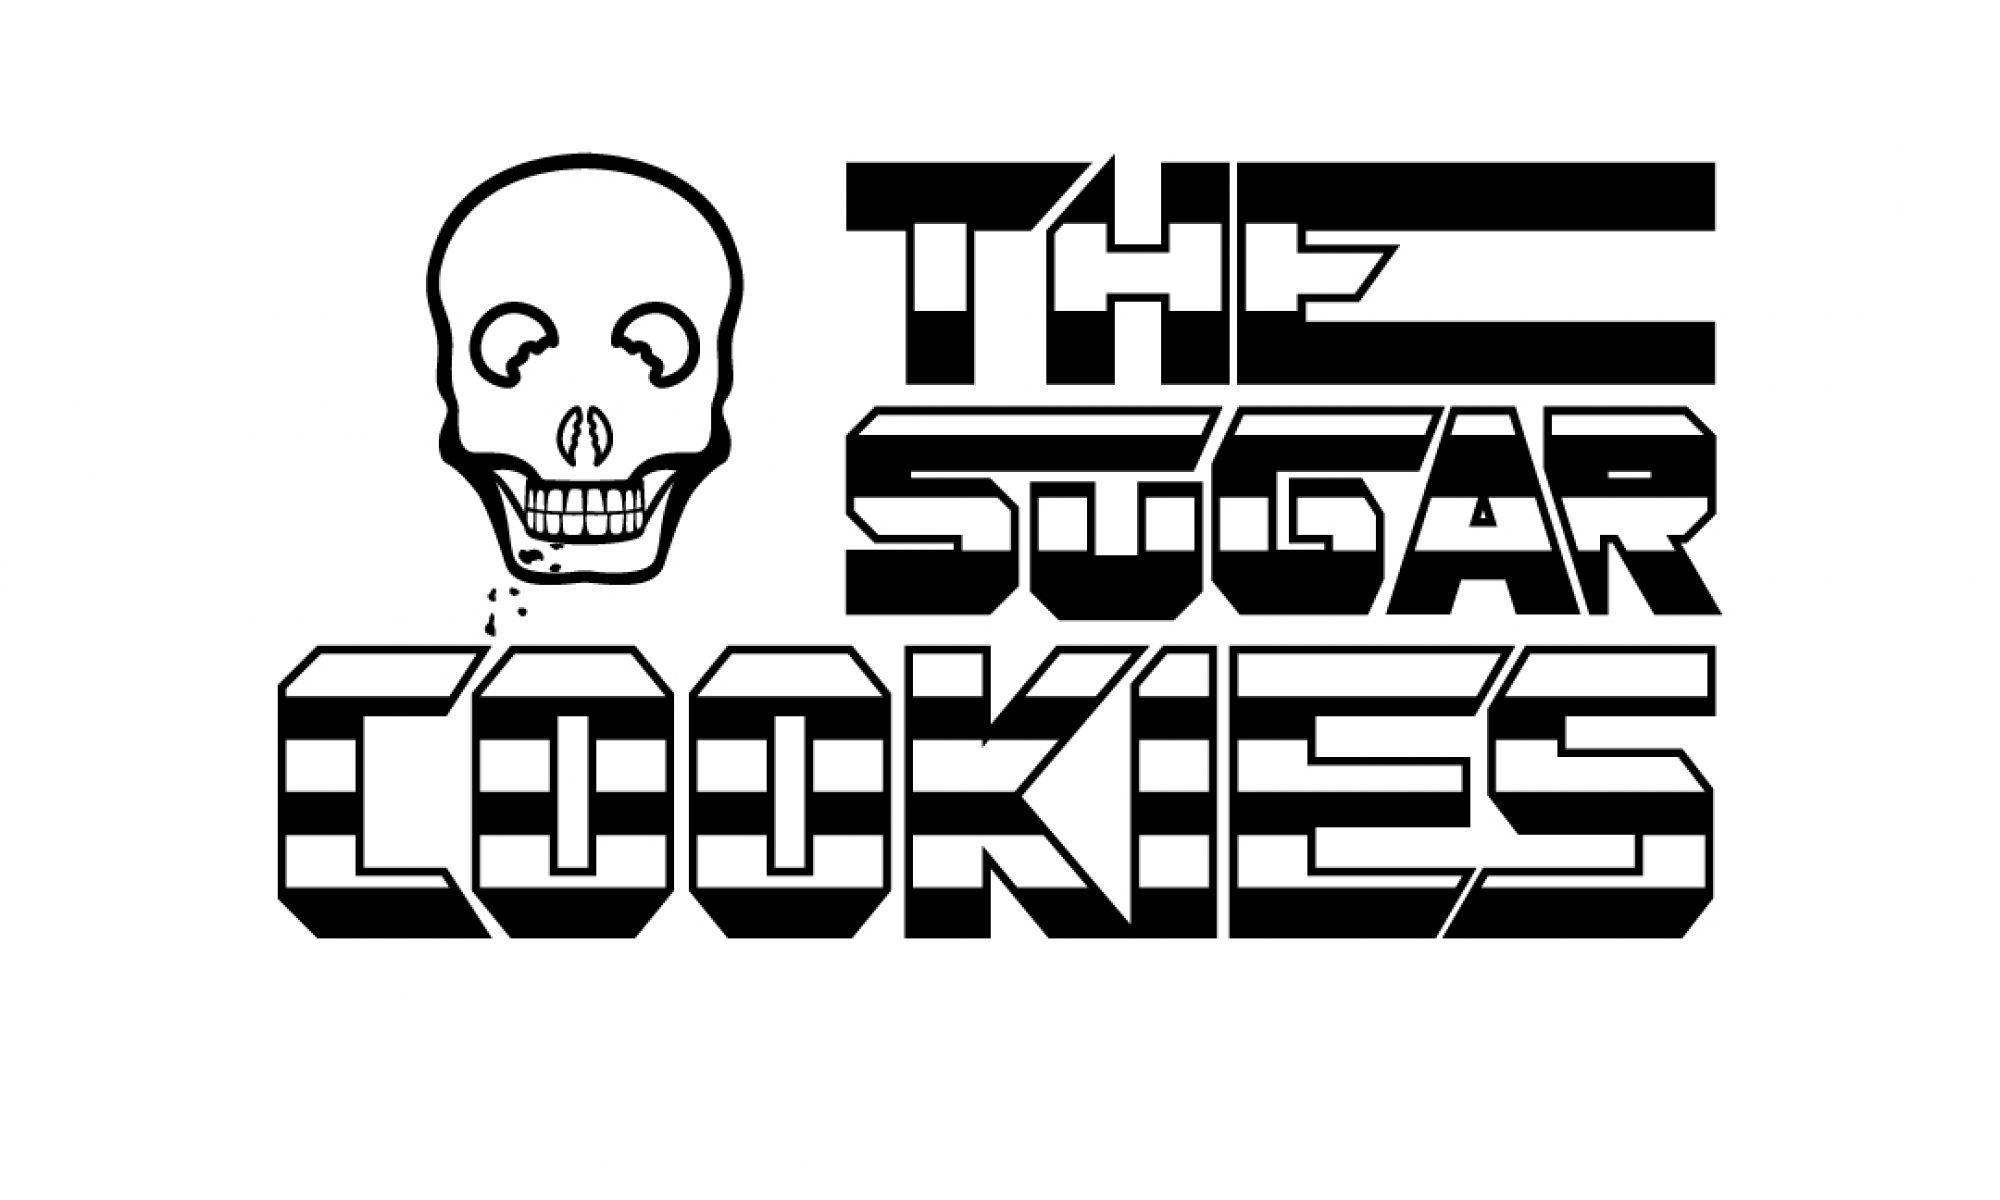 The Sugar Cookies